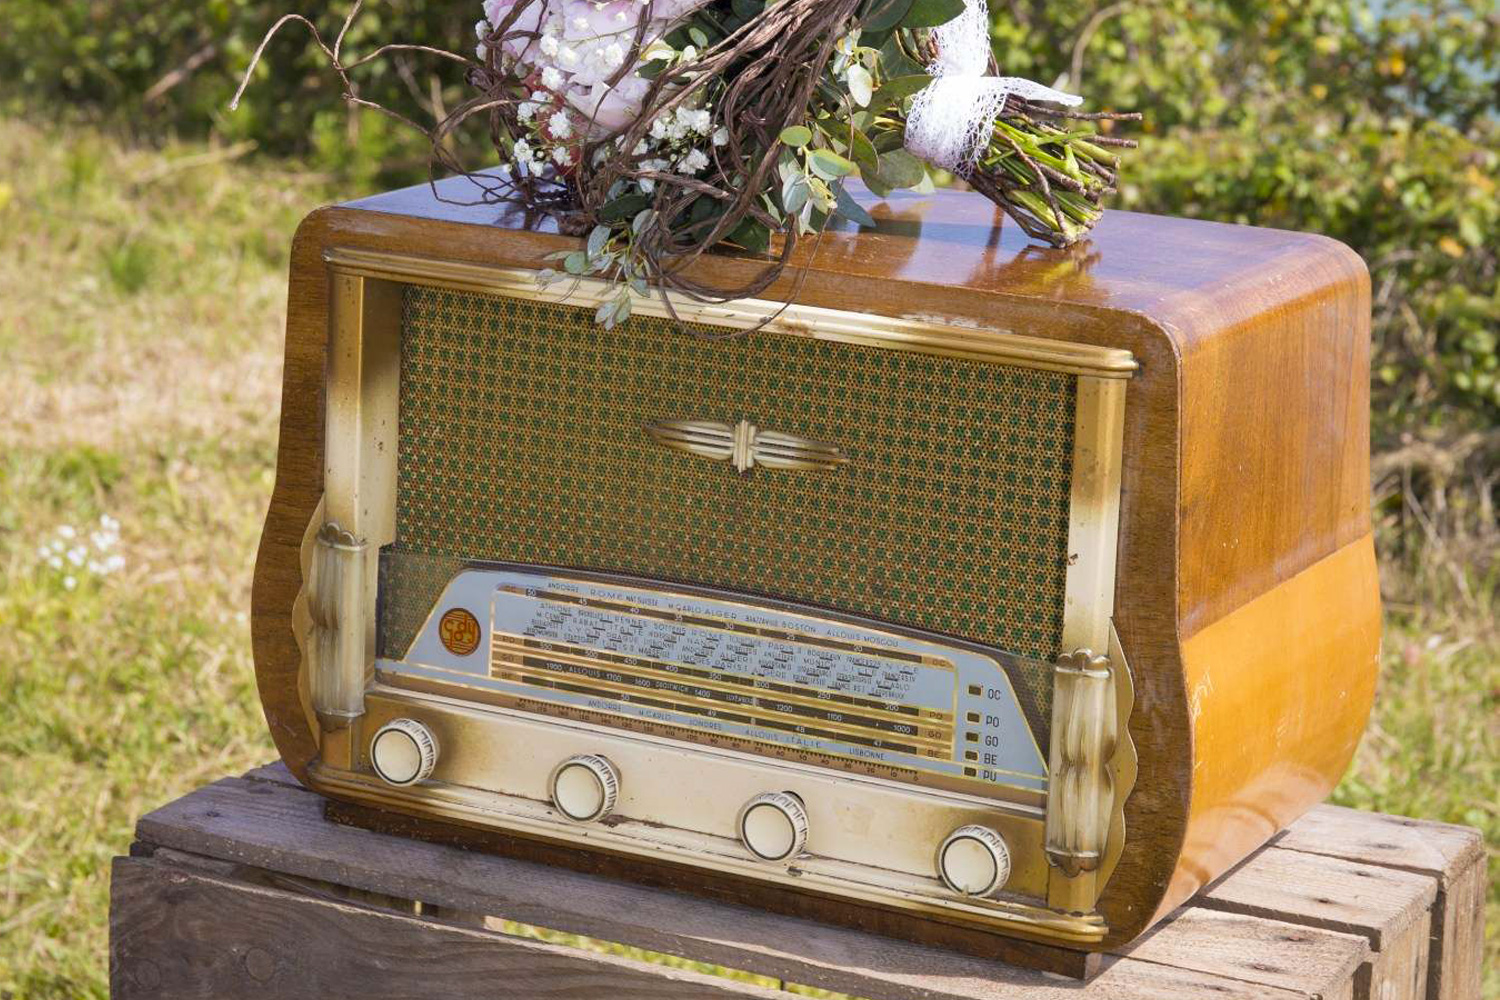 Couverts-compagnie-Radio